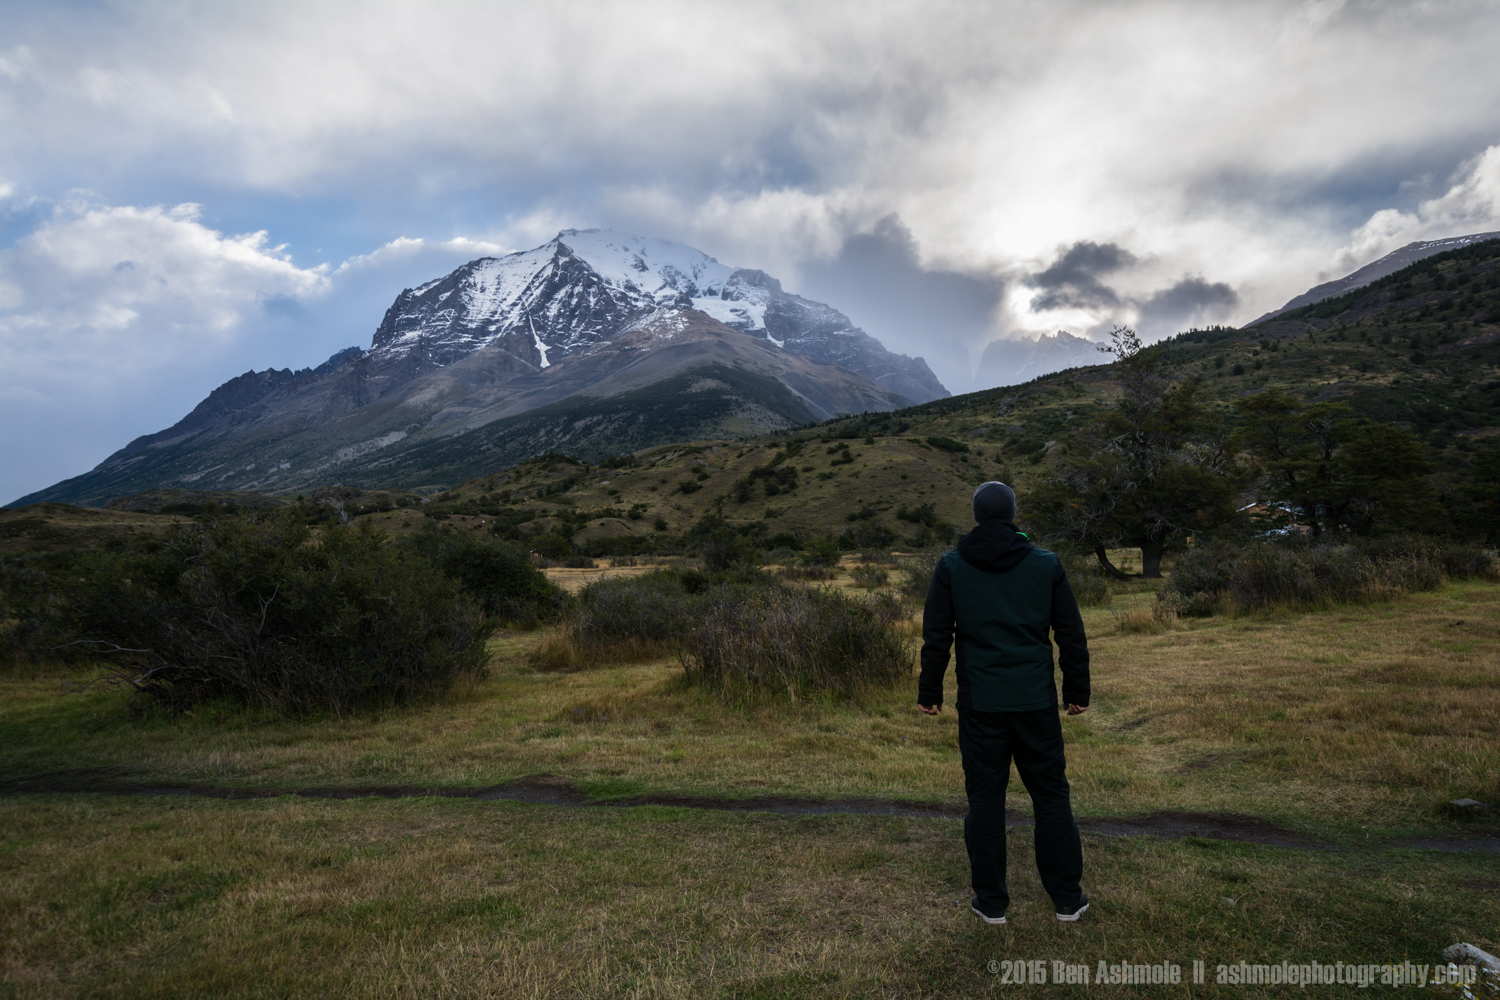 Looking Towards The 'W', Torres Del Paine, Patagonia, Chile